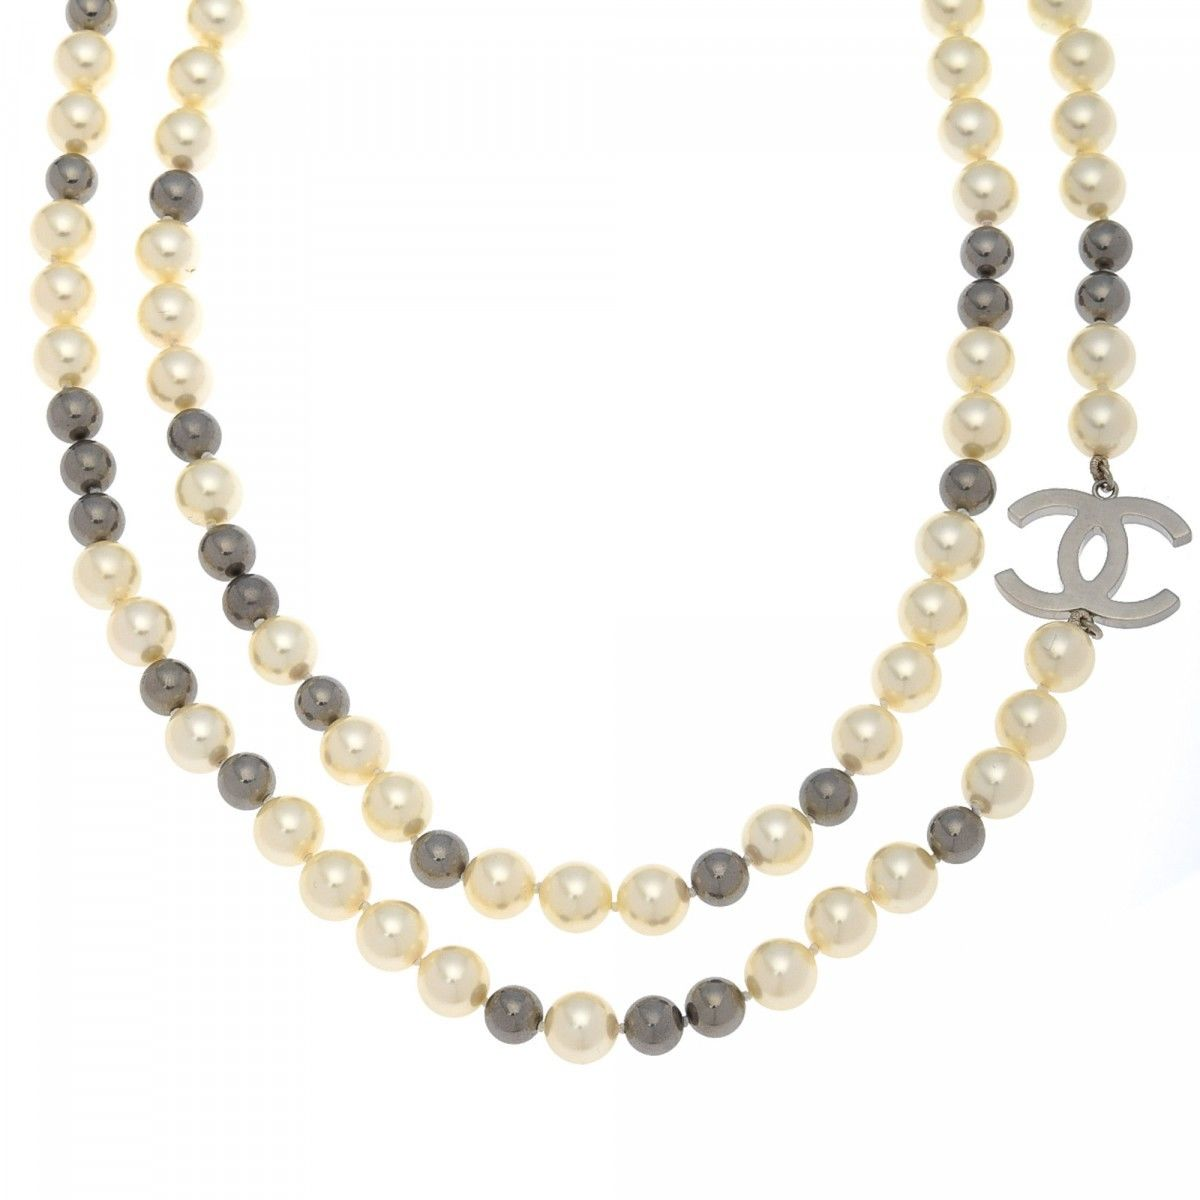 uptown in accessories necklaces jewellery ve downtown necklace home s chanel strands product gen faux women pearl img